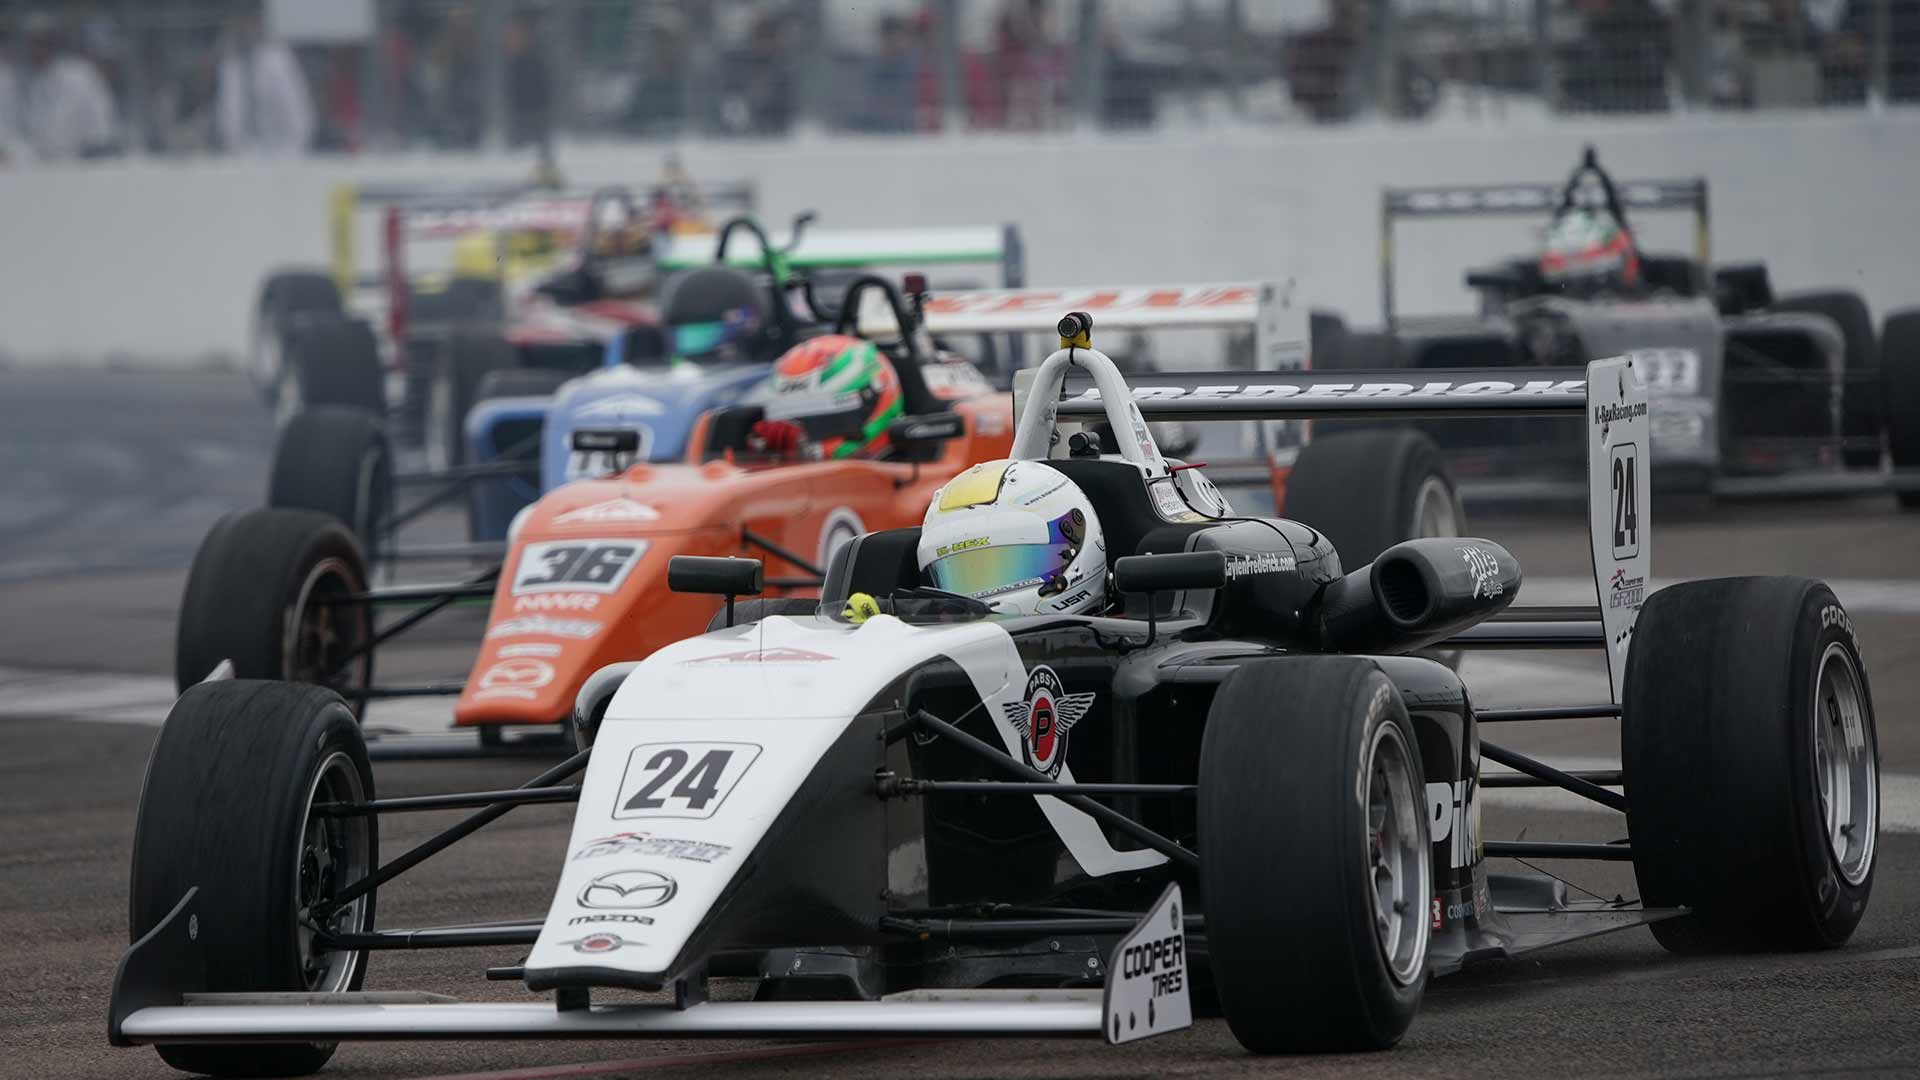 Road to Indy cars on track